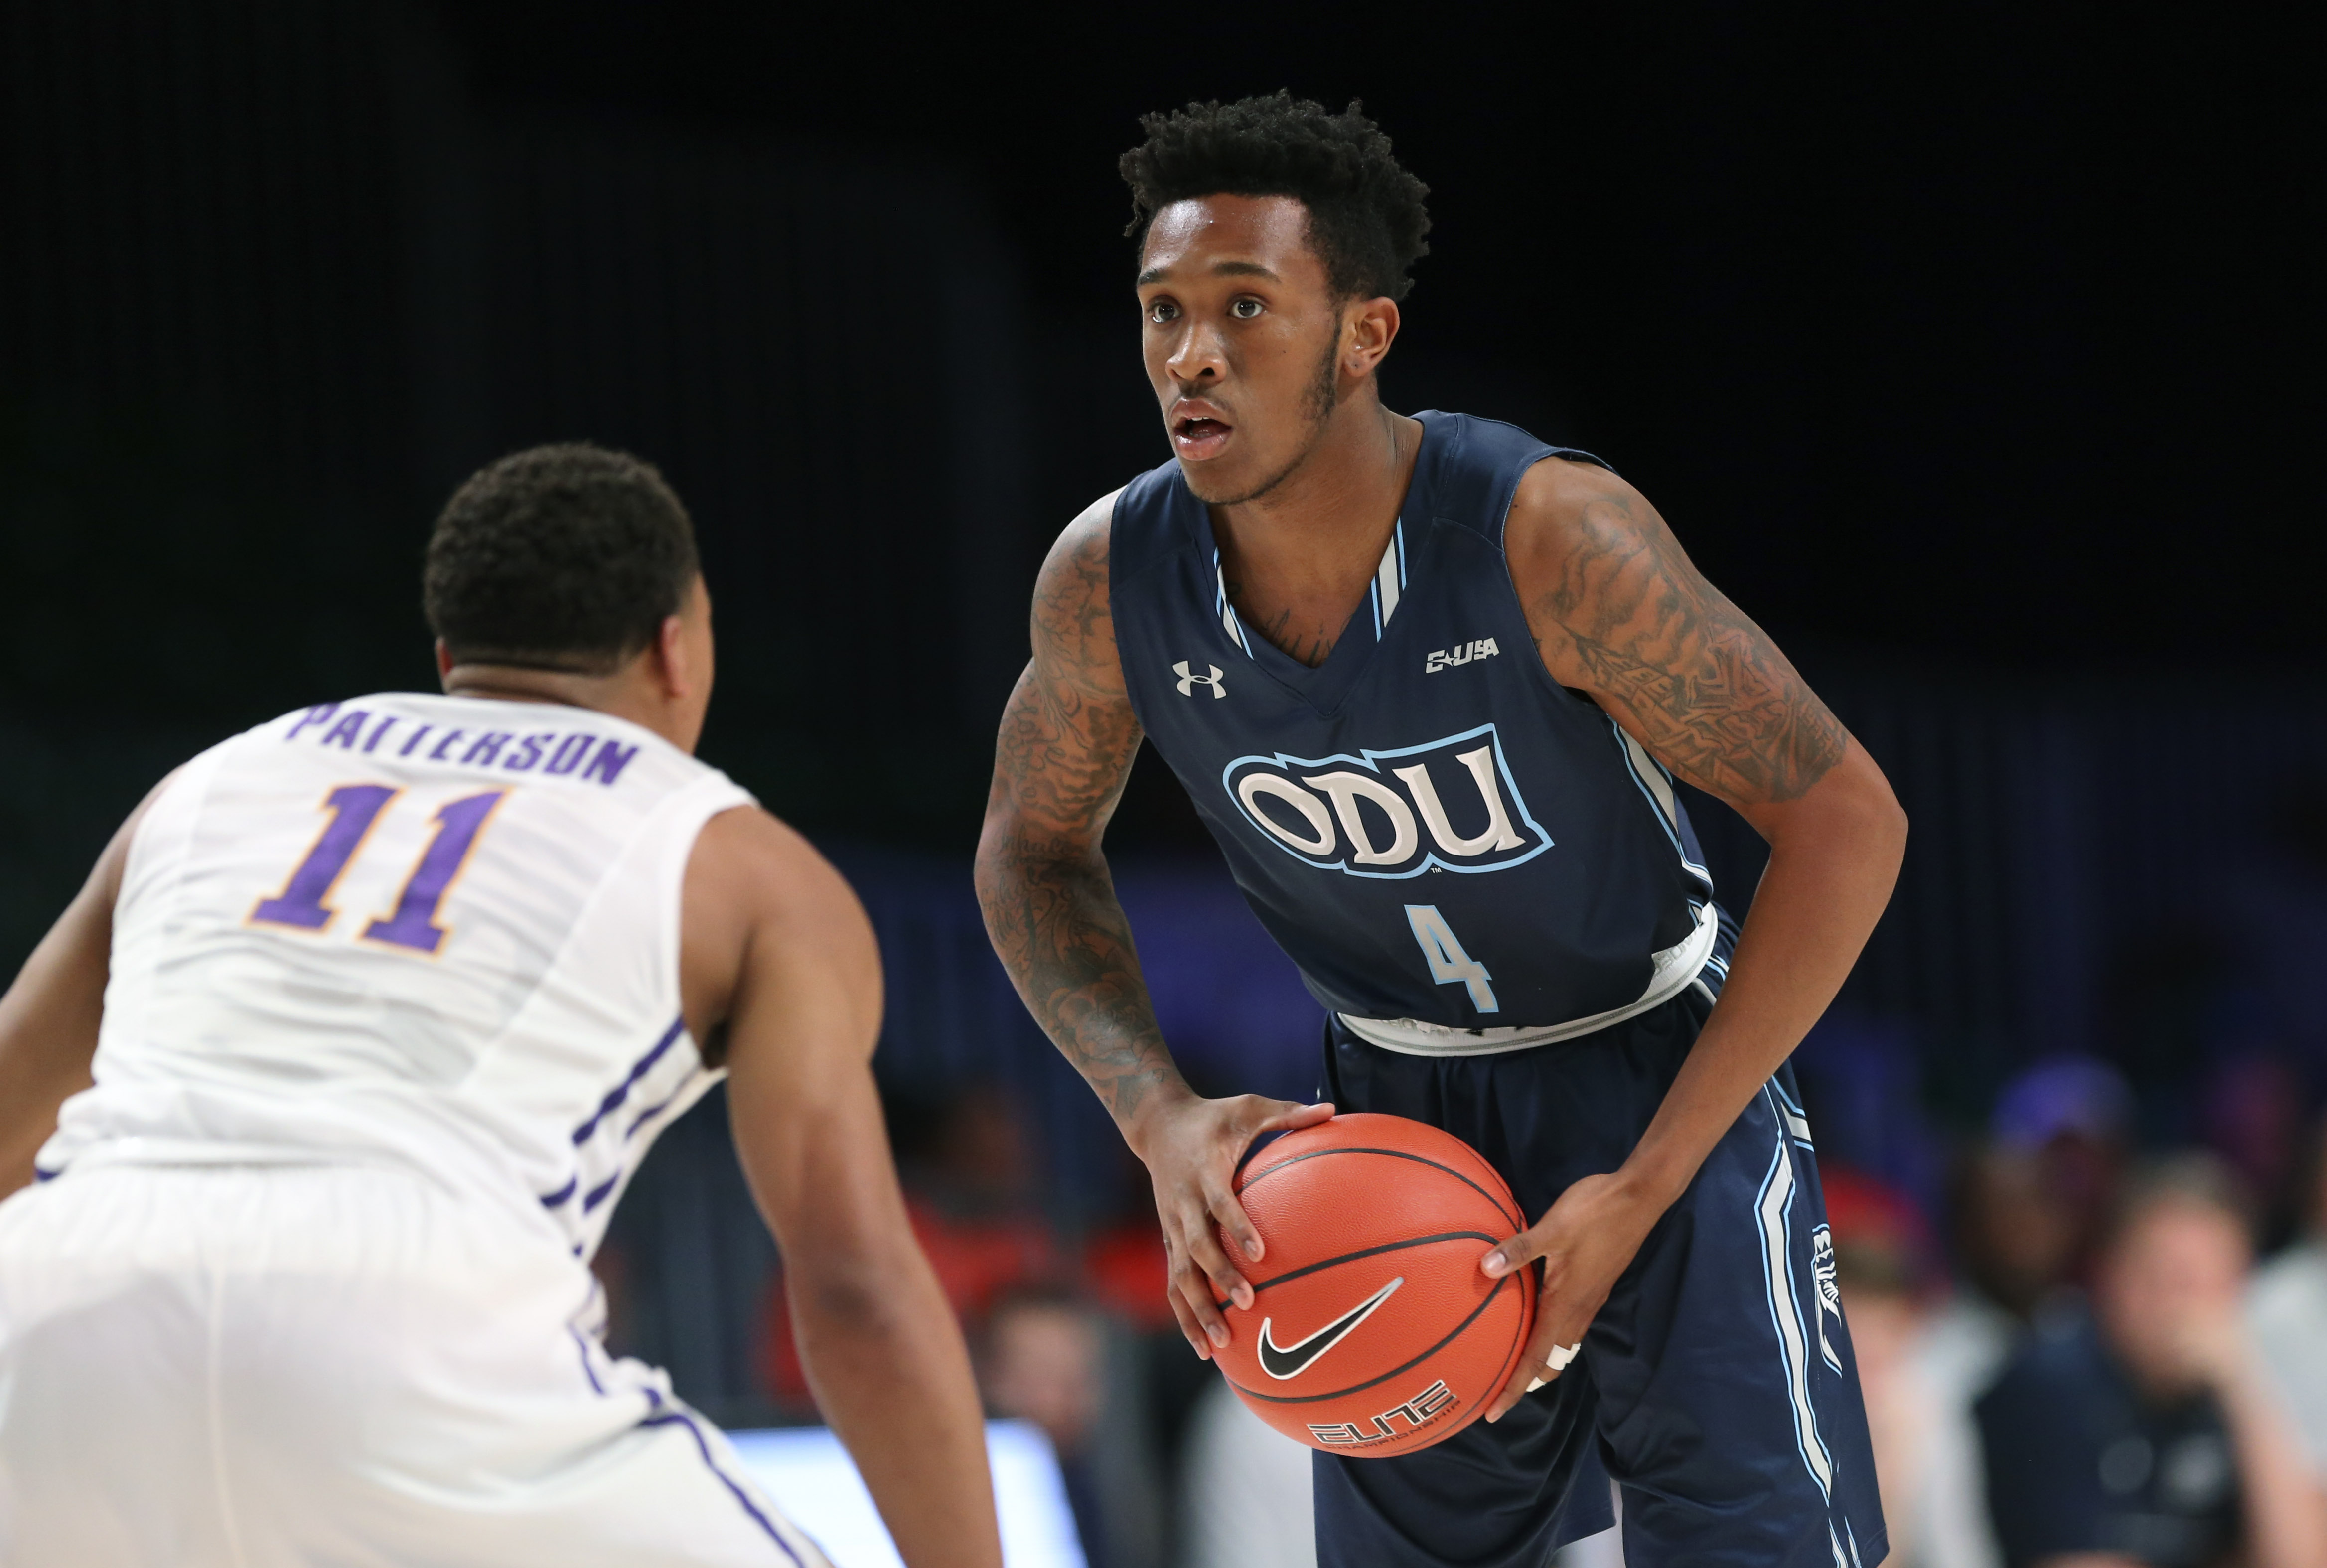 Old Dominion beats St. John's 63-55 in Battle 4 Atlantis